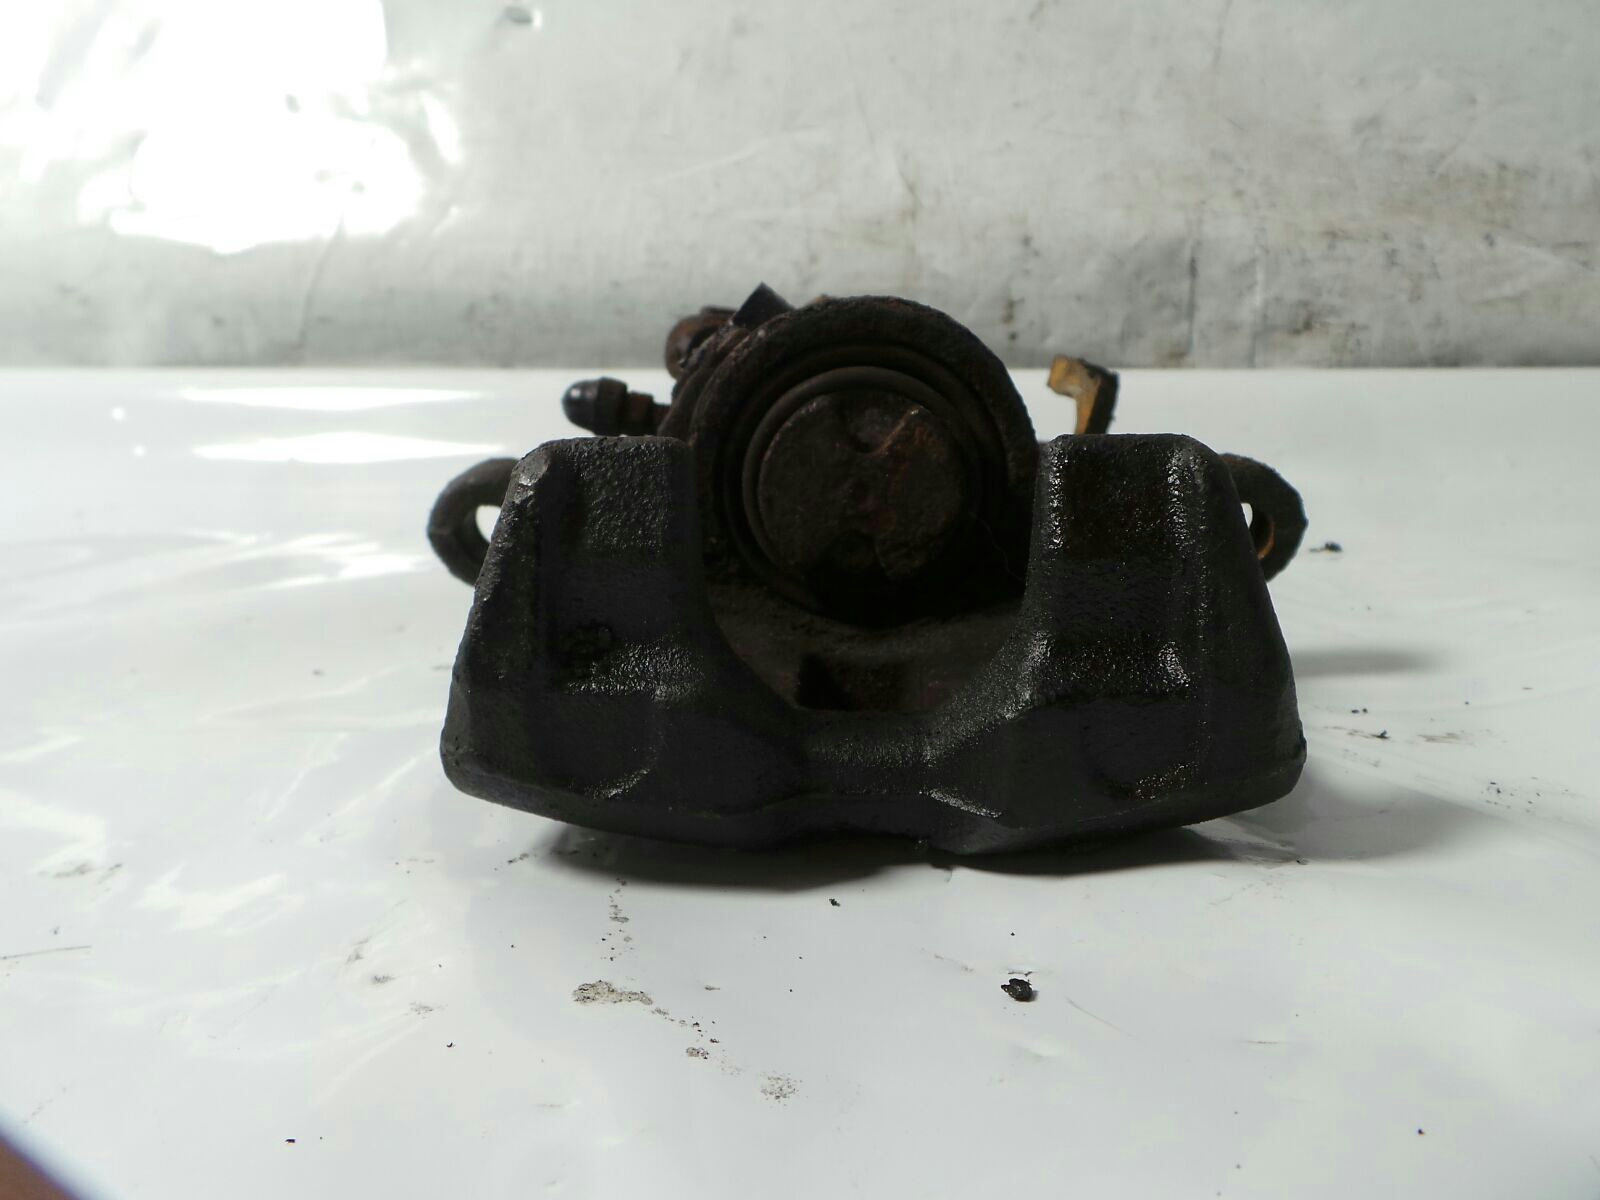 BRAKE CALIPER Mazda 6 2002 To 2007 PASSENGERS SIDE REAR N/S/R &